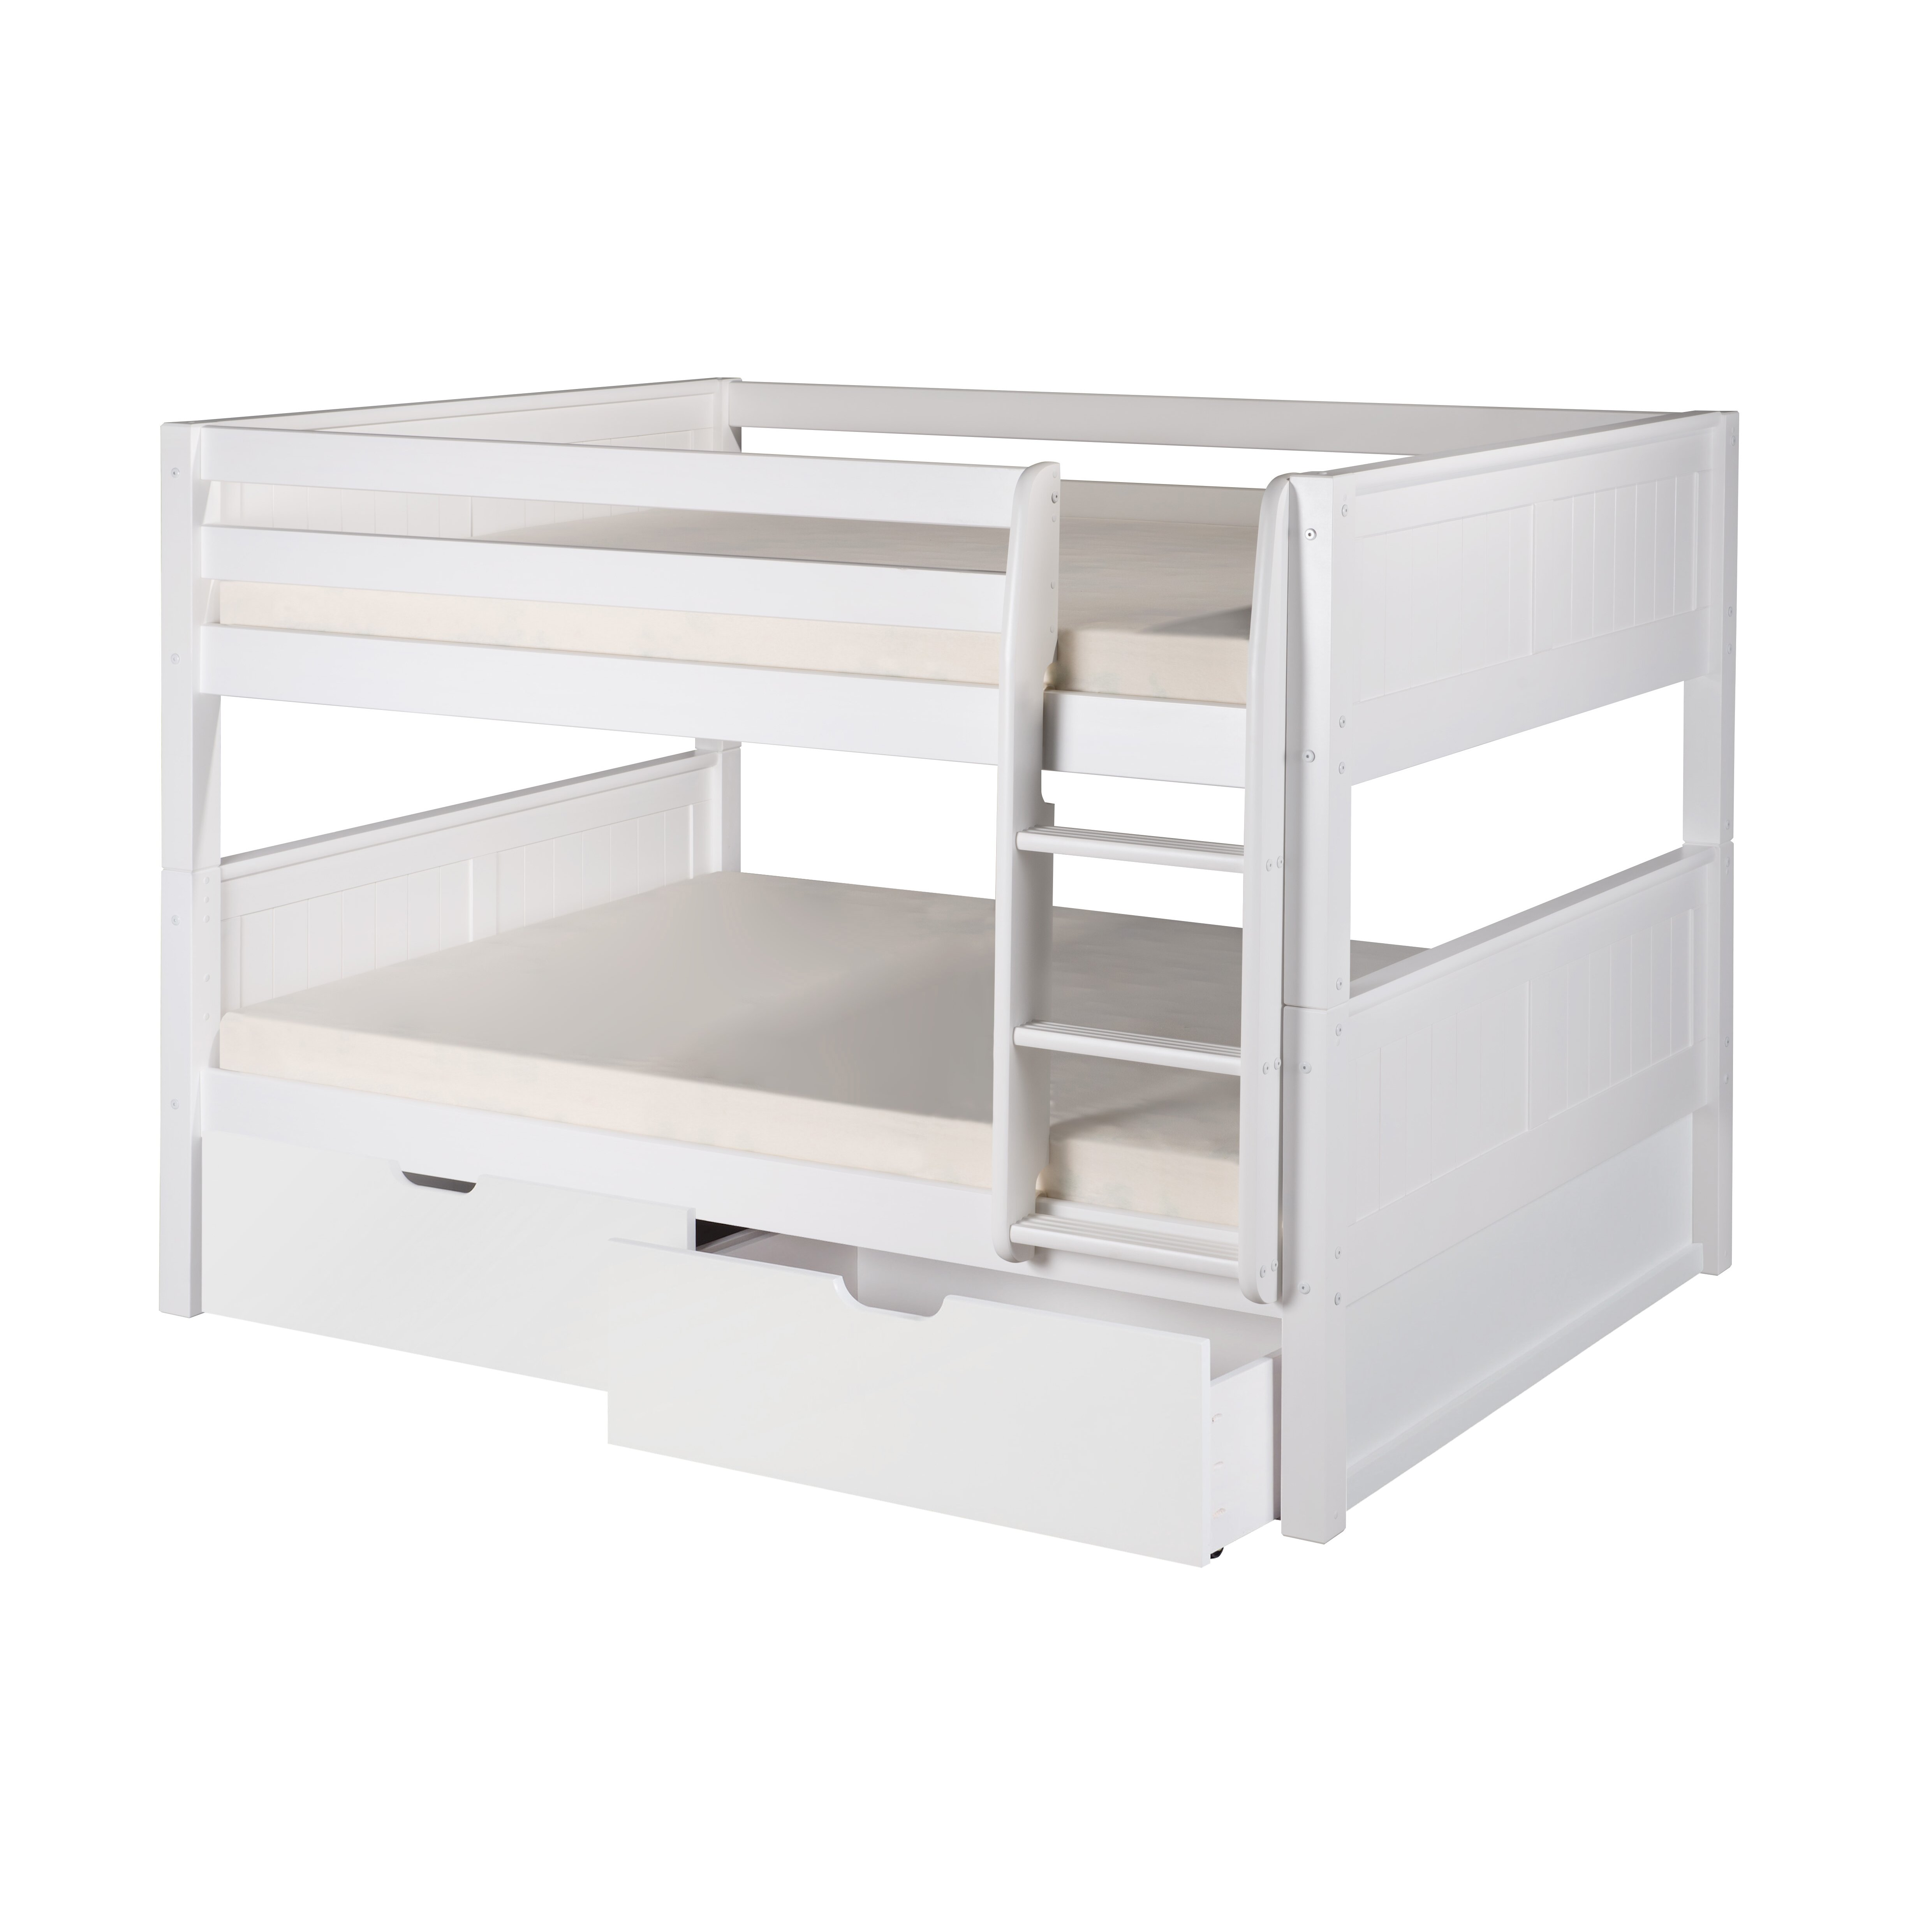 Camaflexi camaflexi full over full bunk bed with storage reviews wayfair - Kids bed with drawers underneath ...